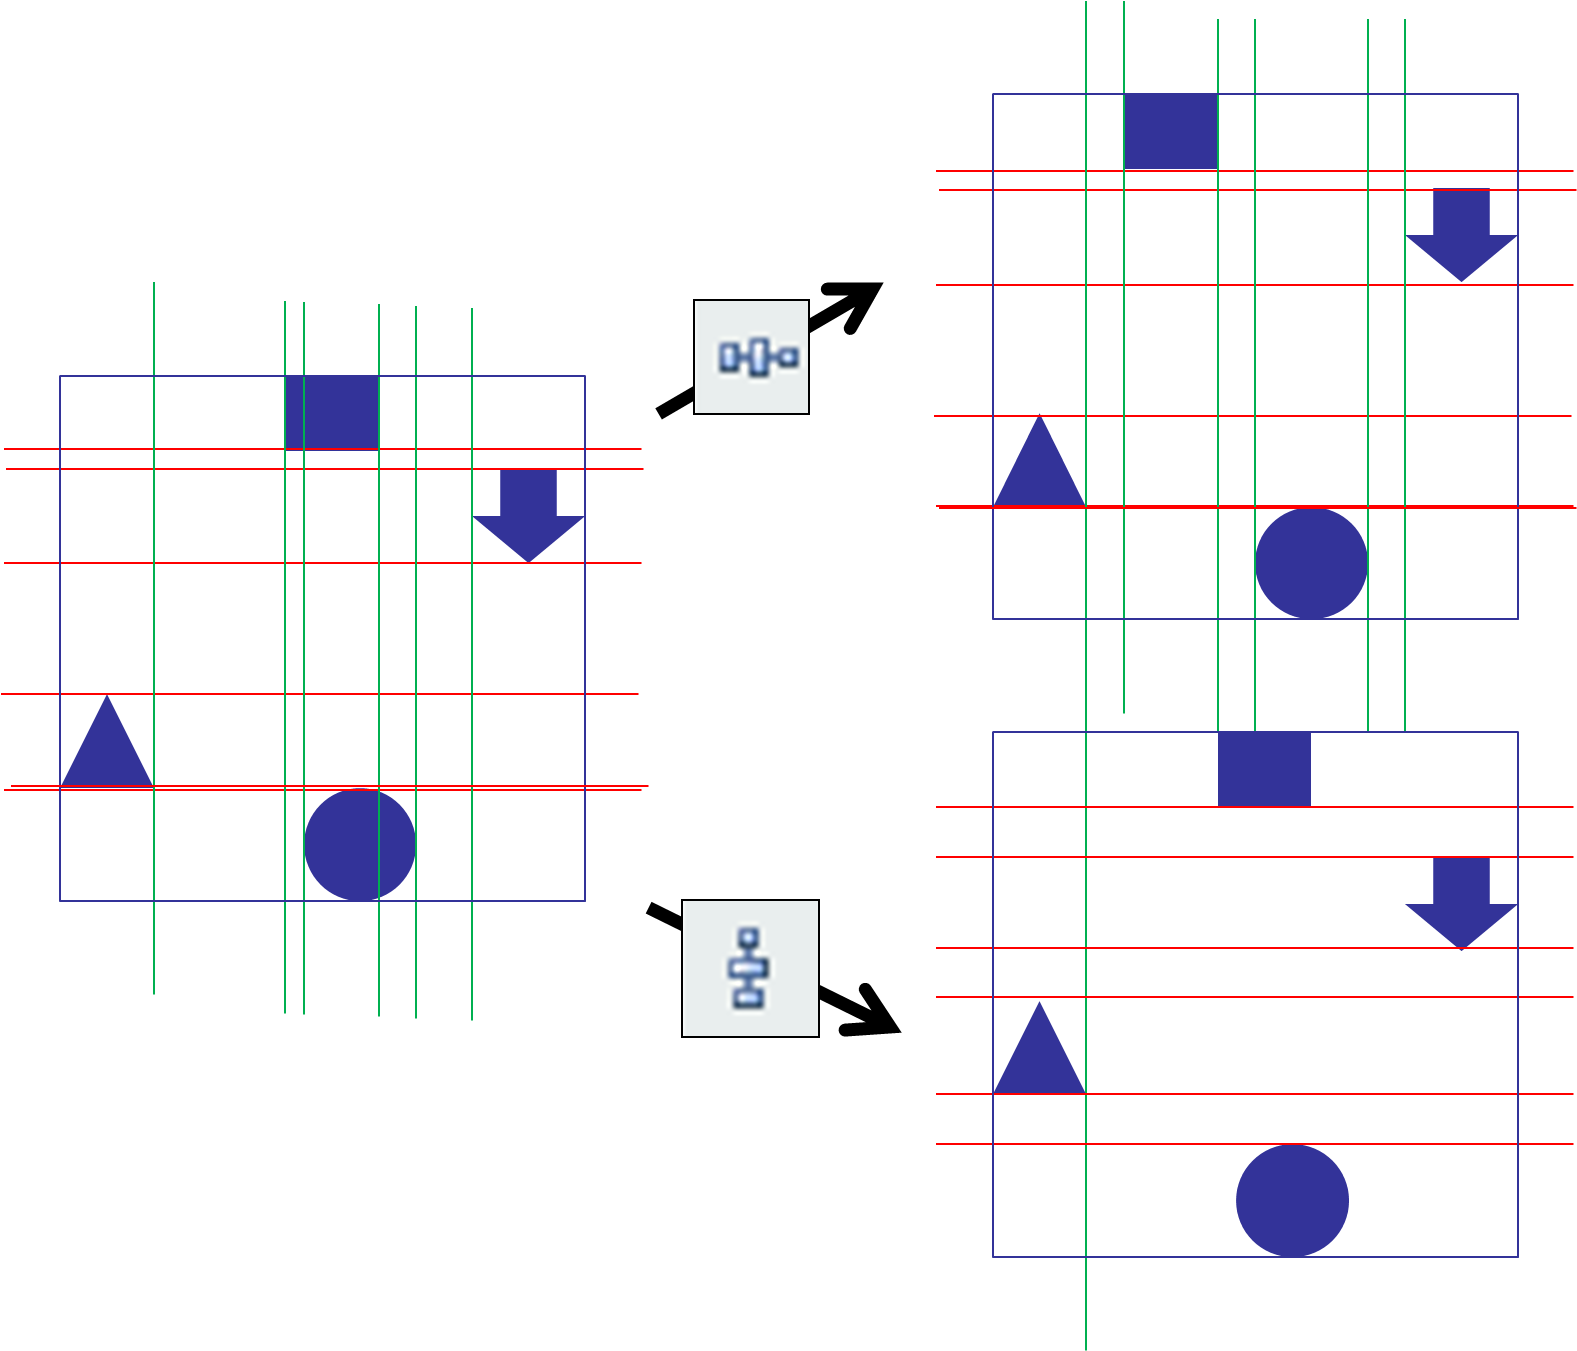 Only The Horizontal Spacing Green Lines Is Changed By Distribution And Ditto For Vertical Operation Red